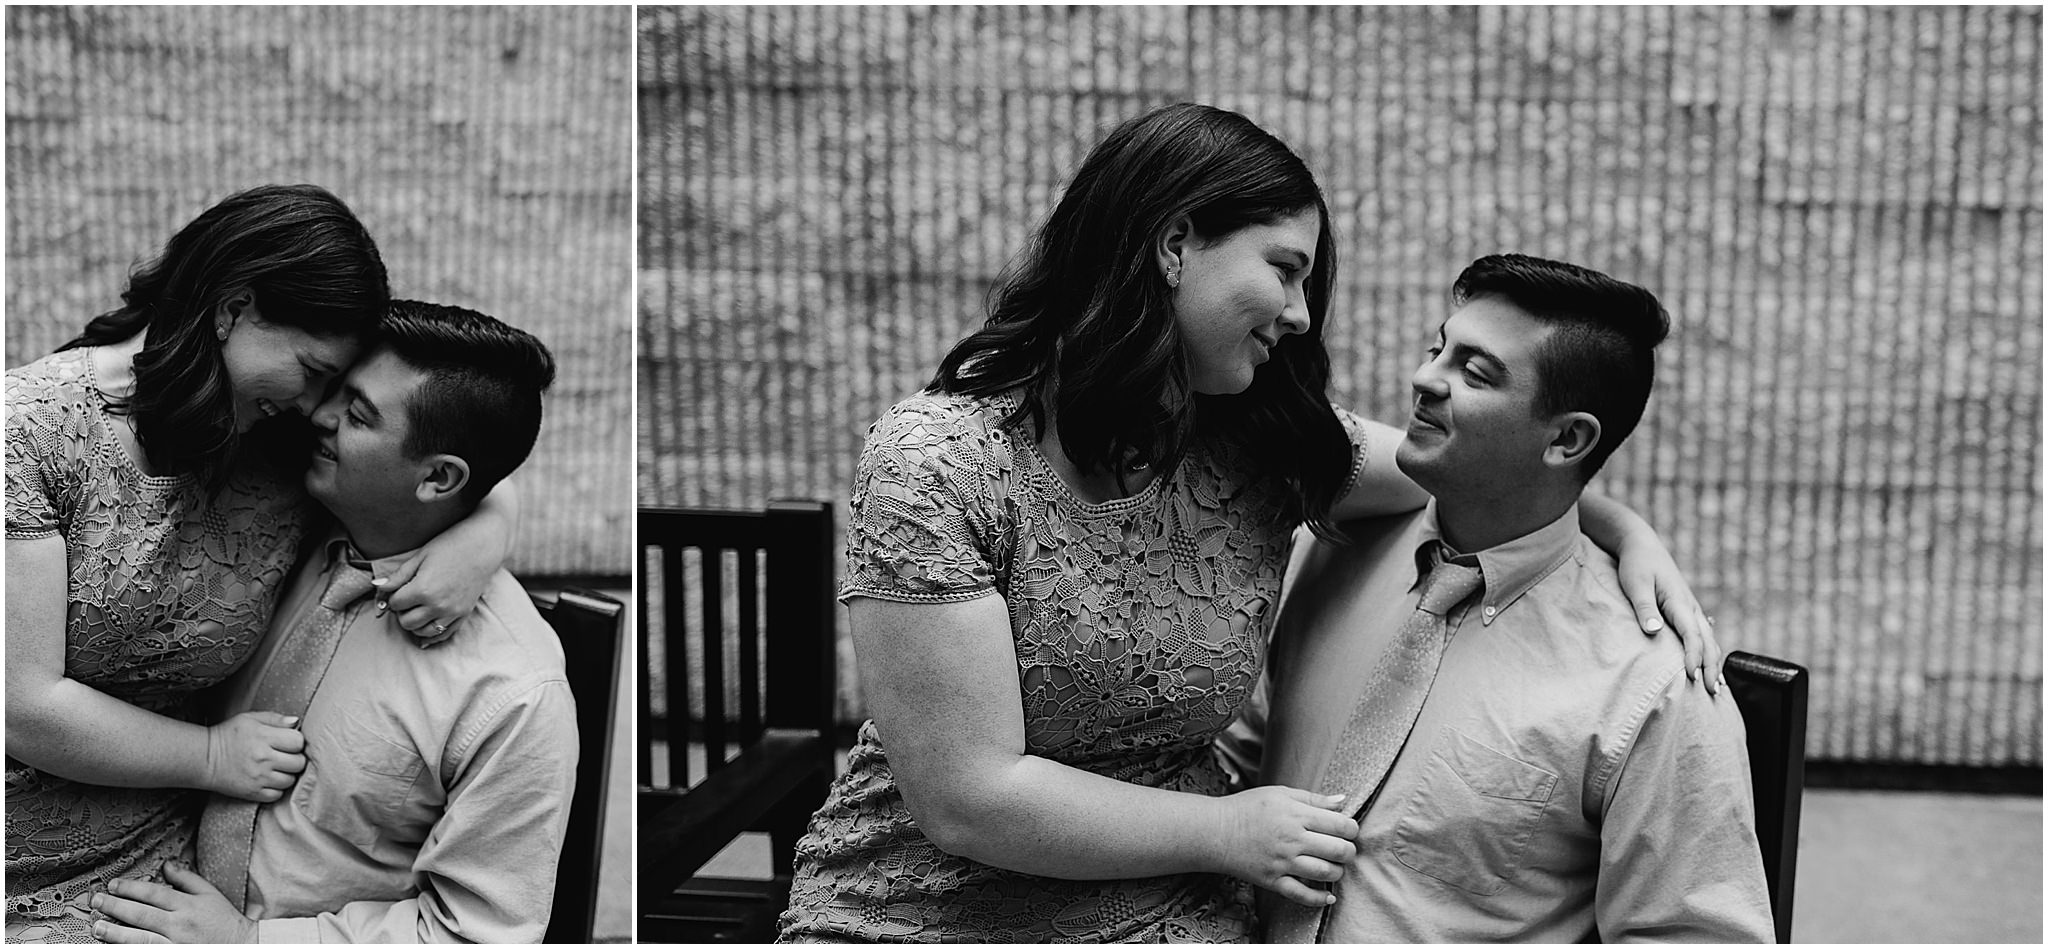 engagement session,Downtown Roanoke,Engagement Photographer, Clarice & Zac Fall Engagement Session Downtown Roanoke VA